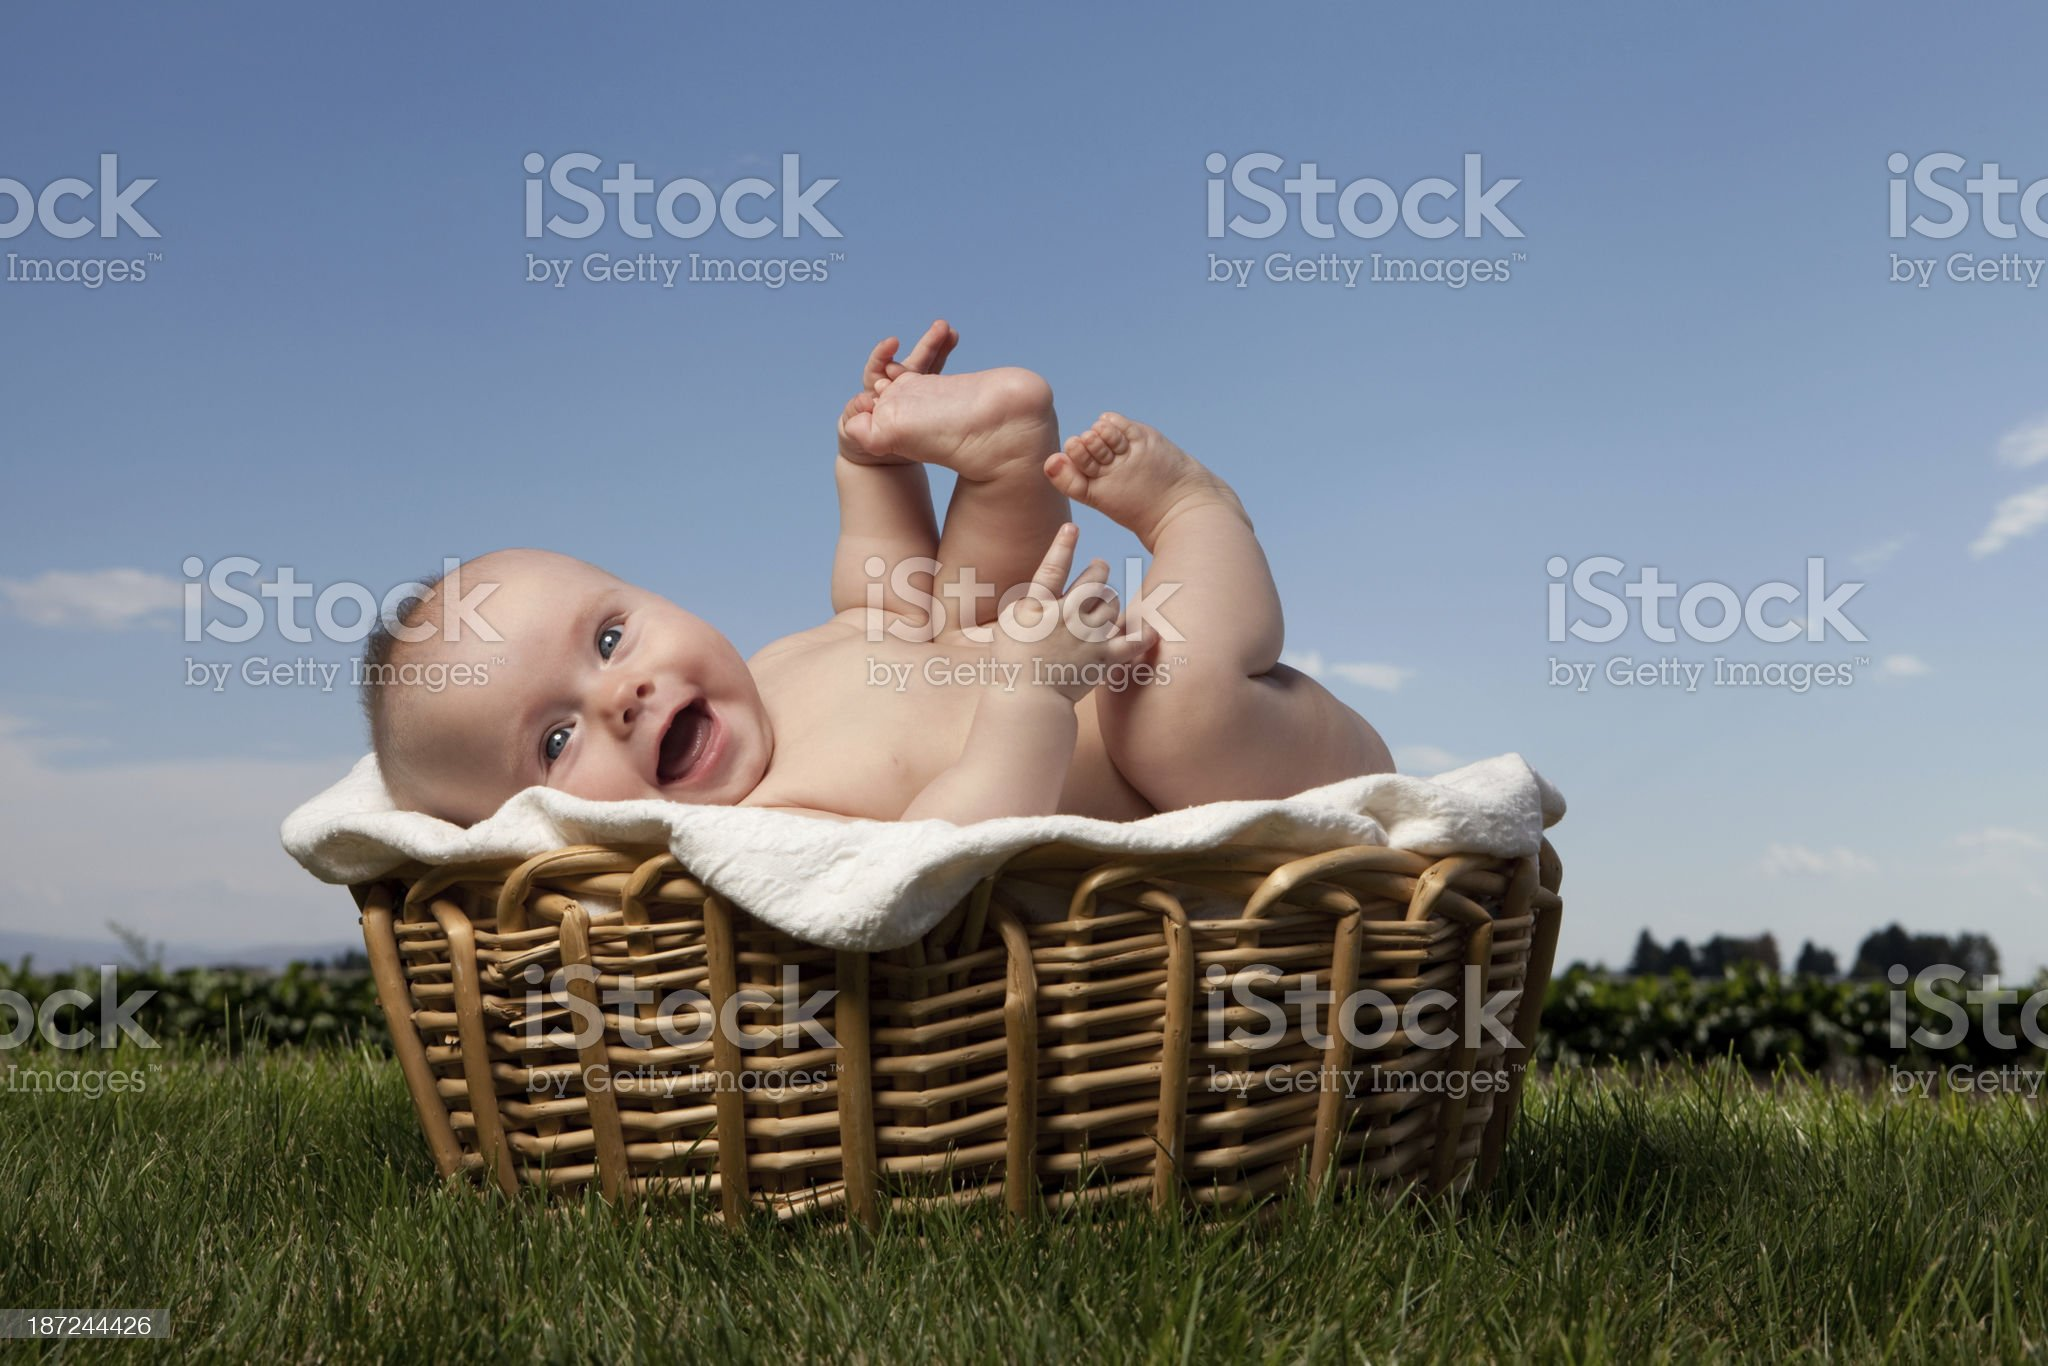 Happy Baby Outdoors on Grass in Basket with Sky royalty-free stock photo